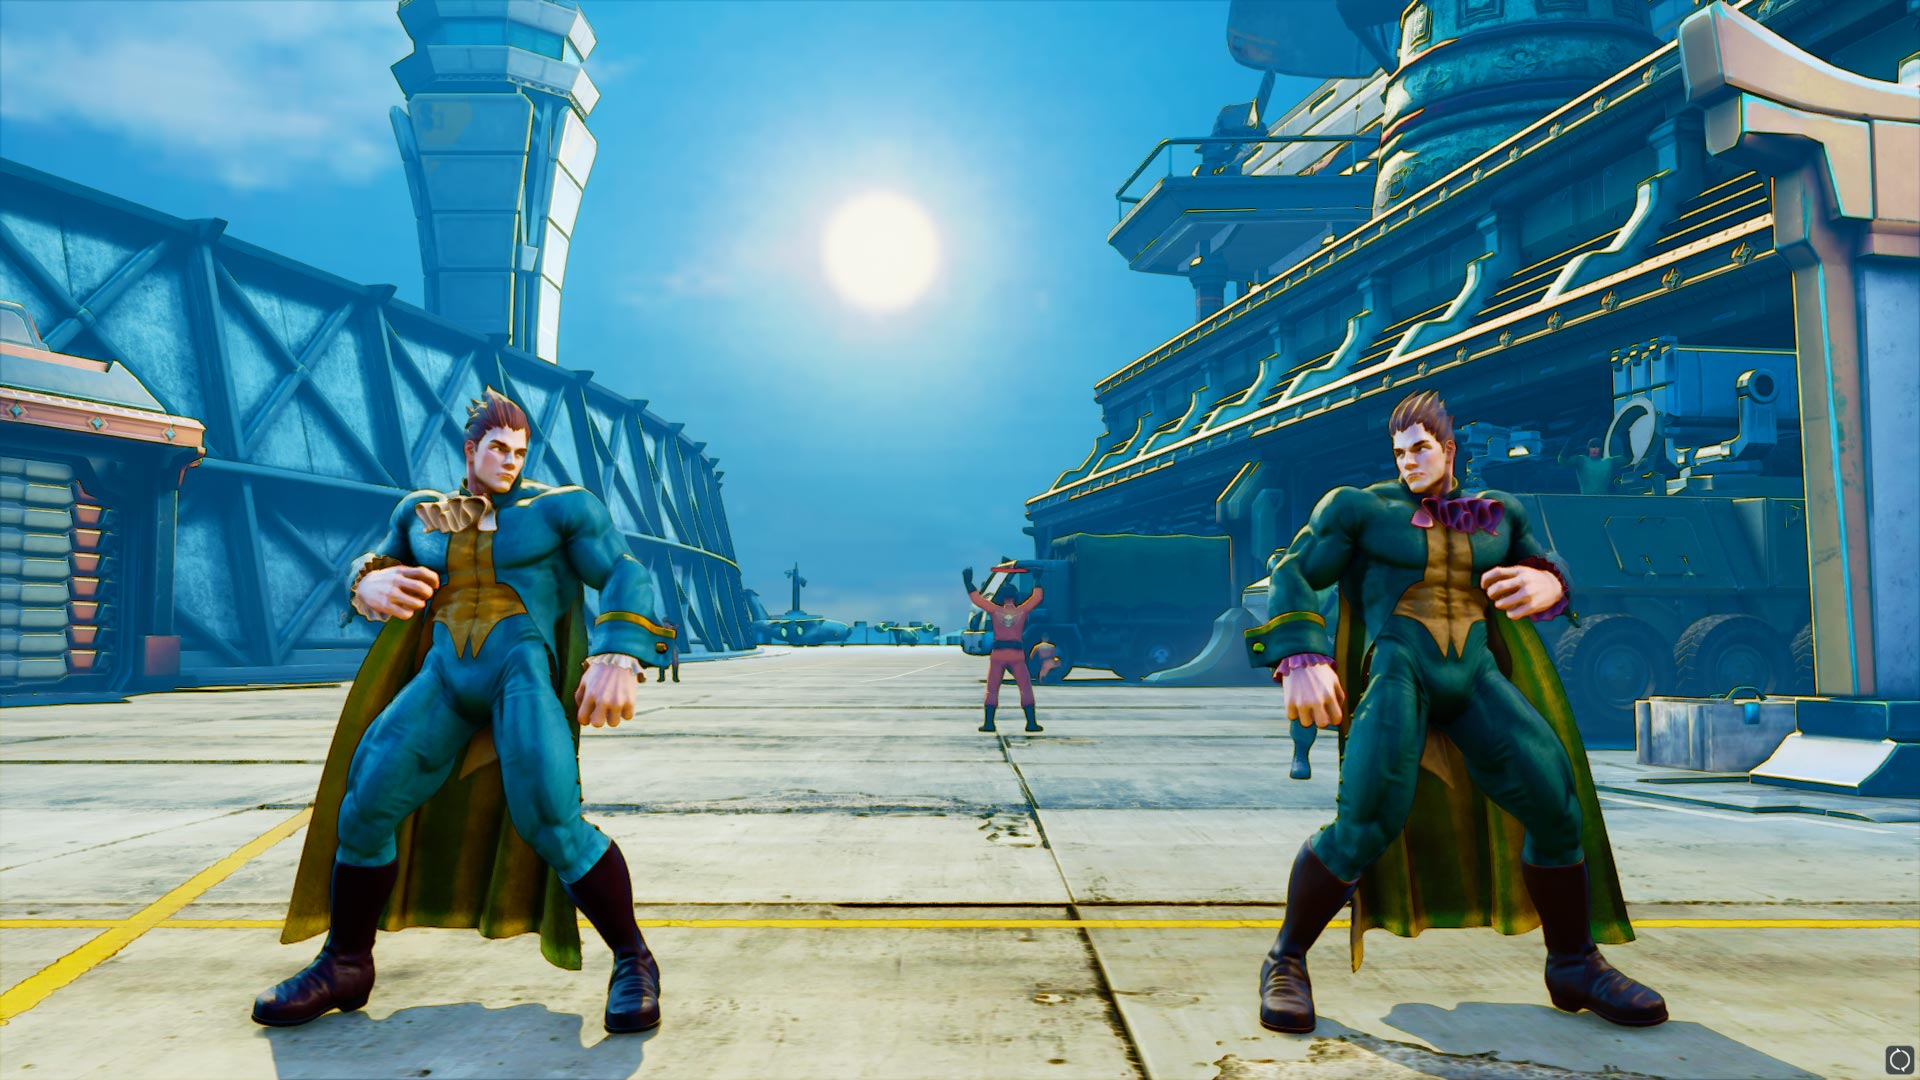 New Darkstalkers costumes in Street Fighter 5 13 out of 17 image gallery